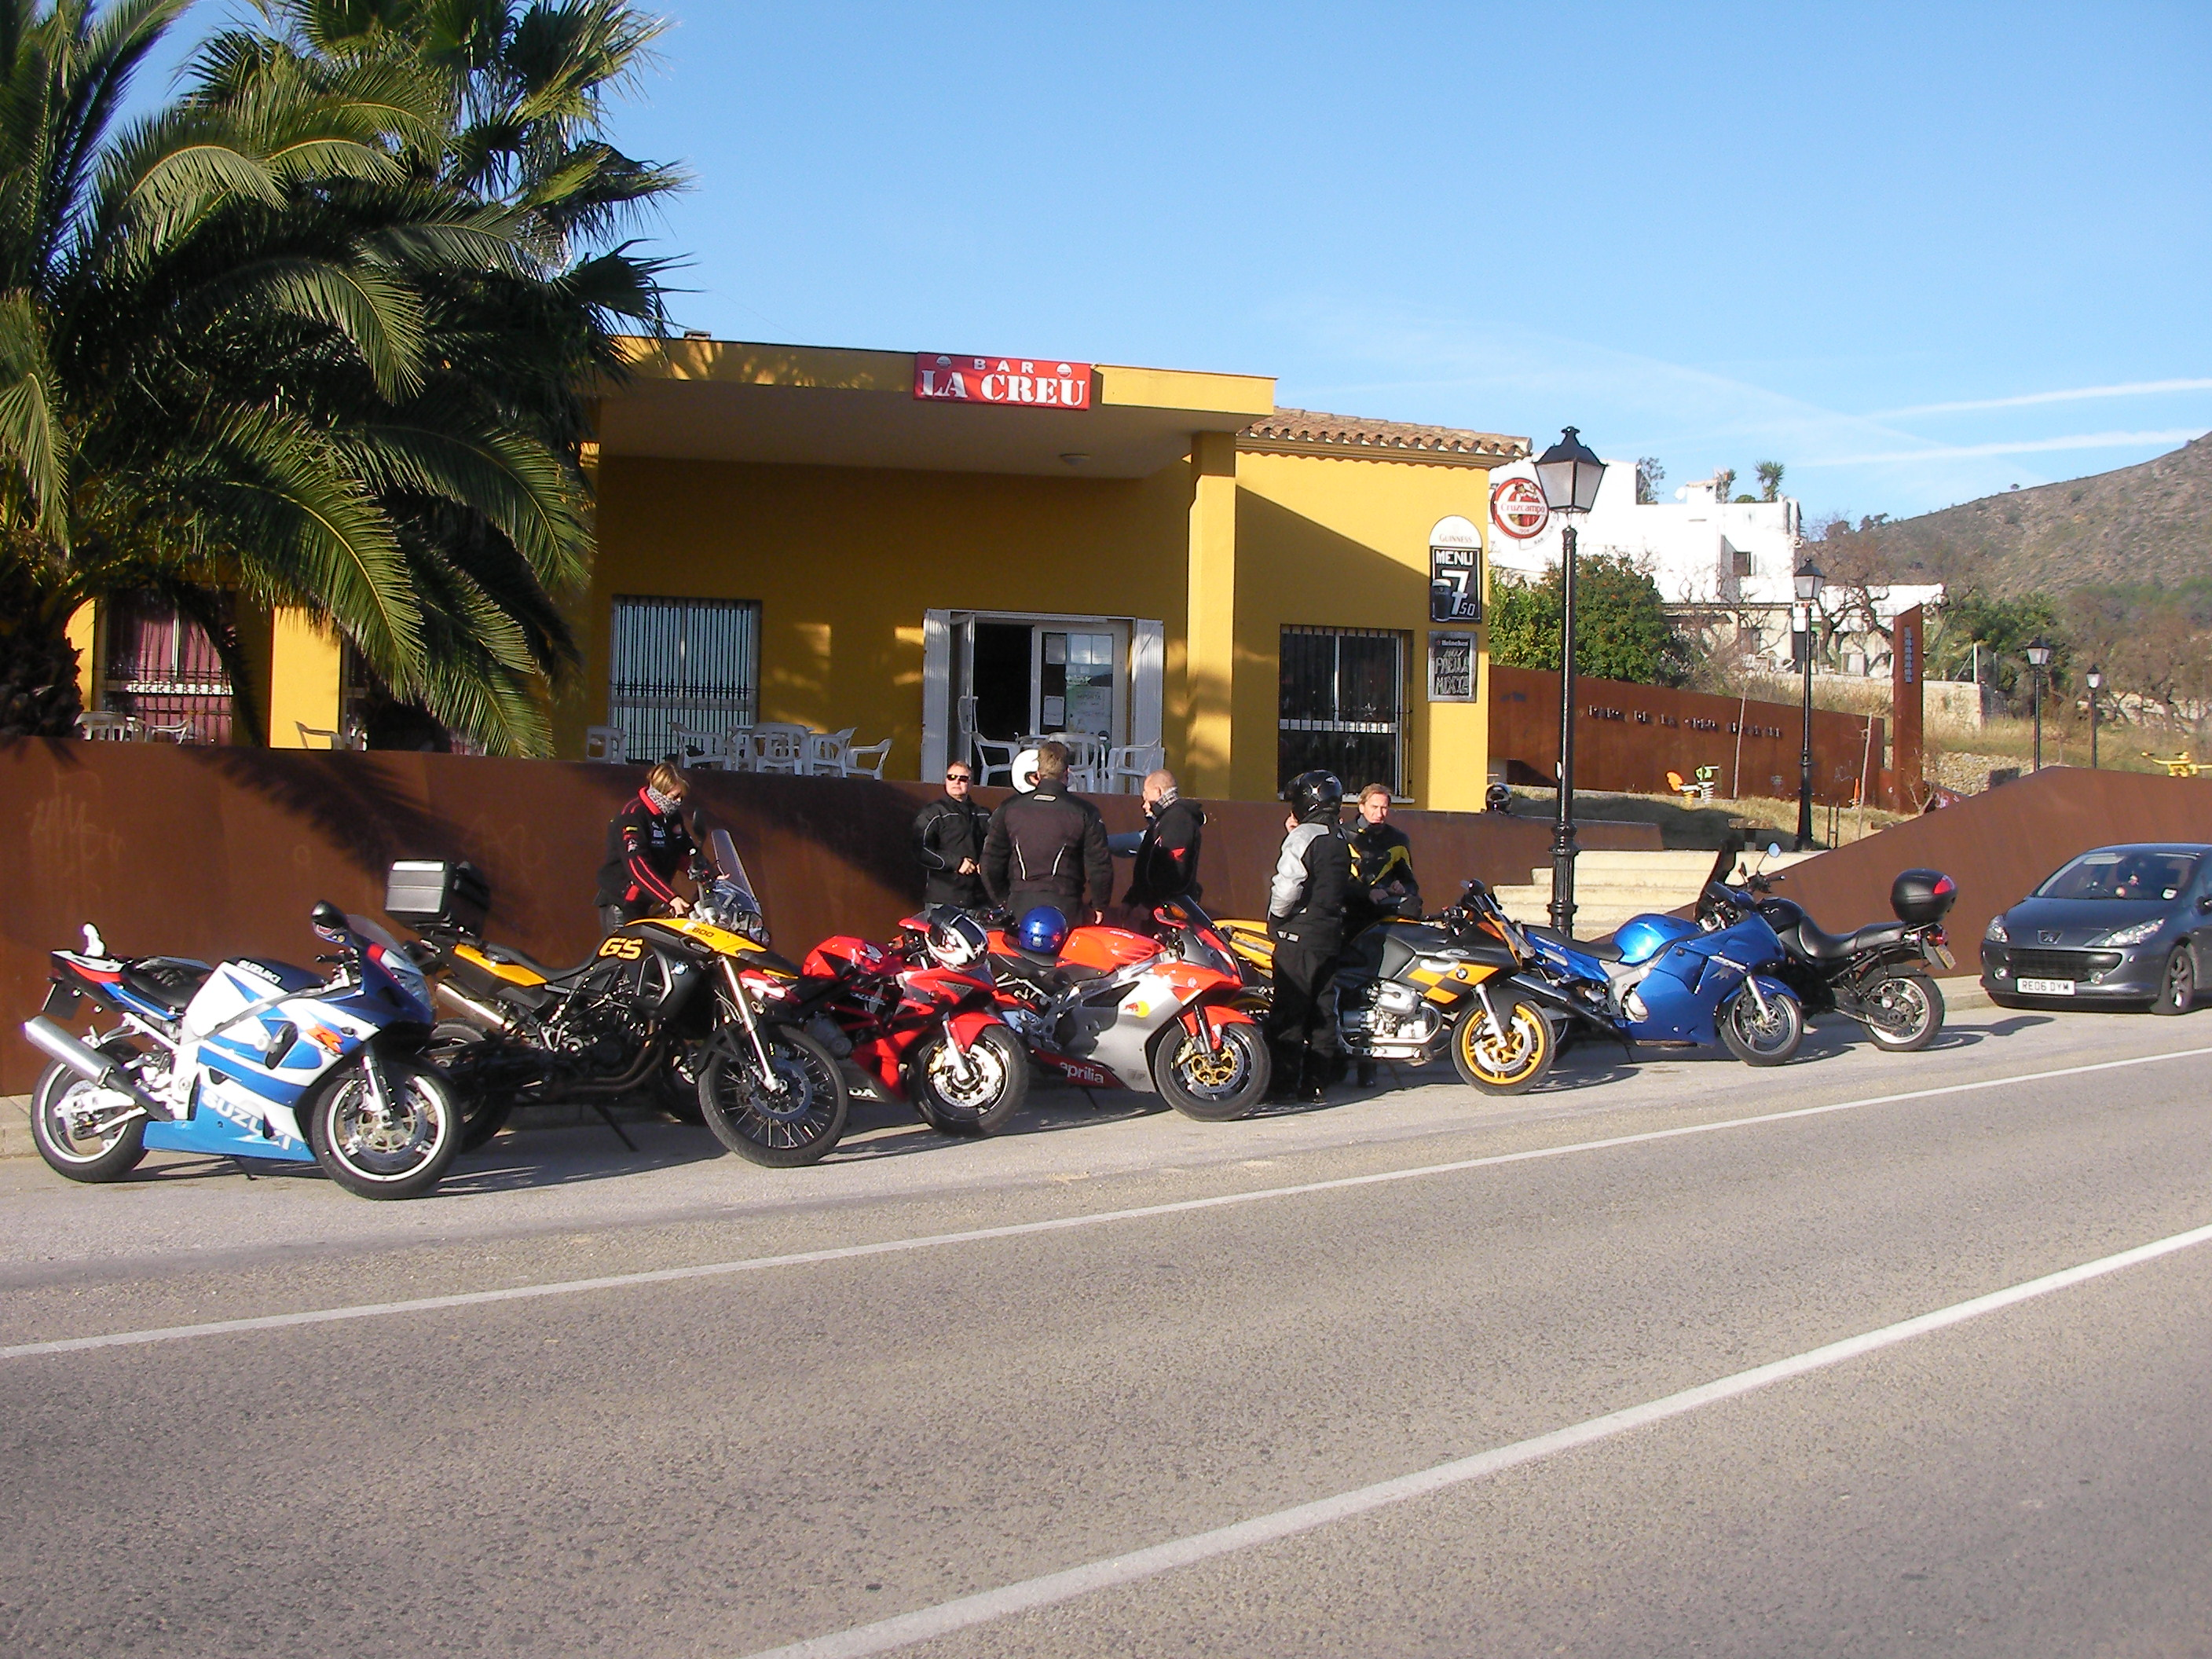 Bikers gathering for a ride.